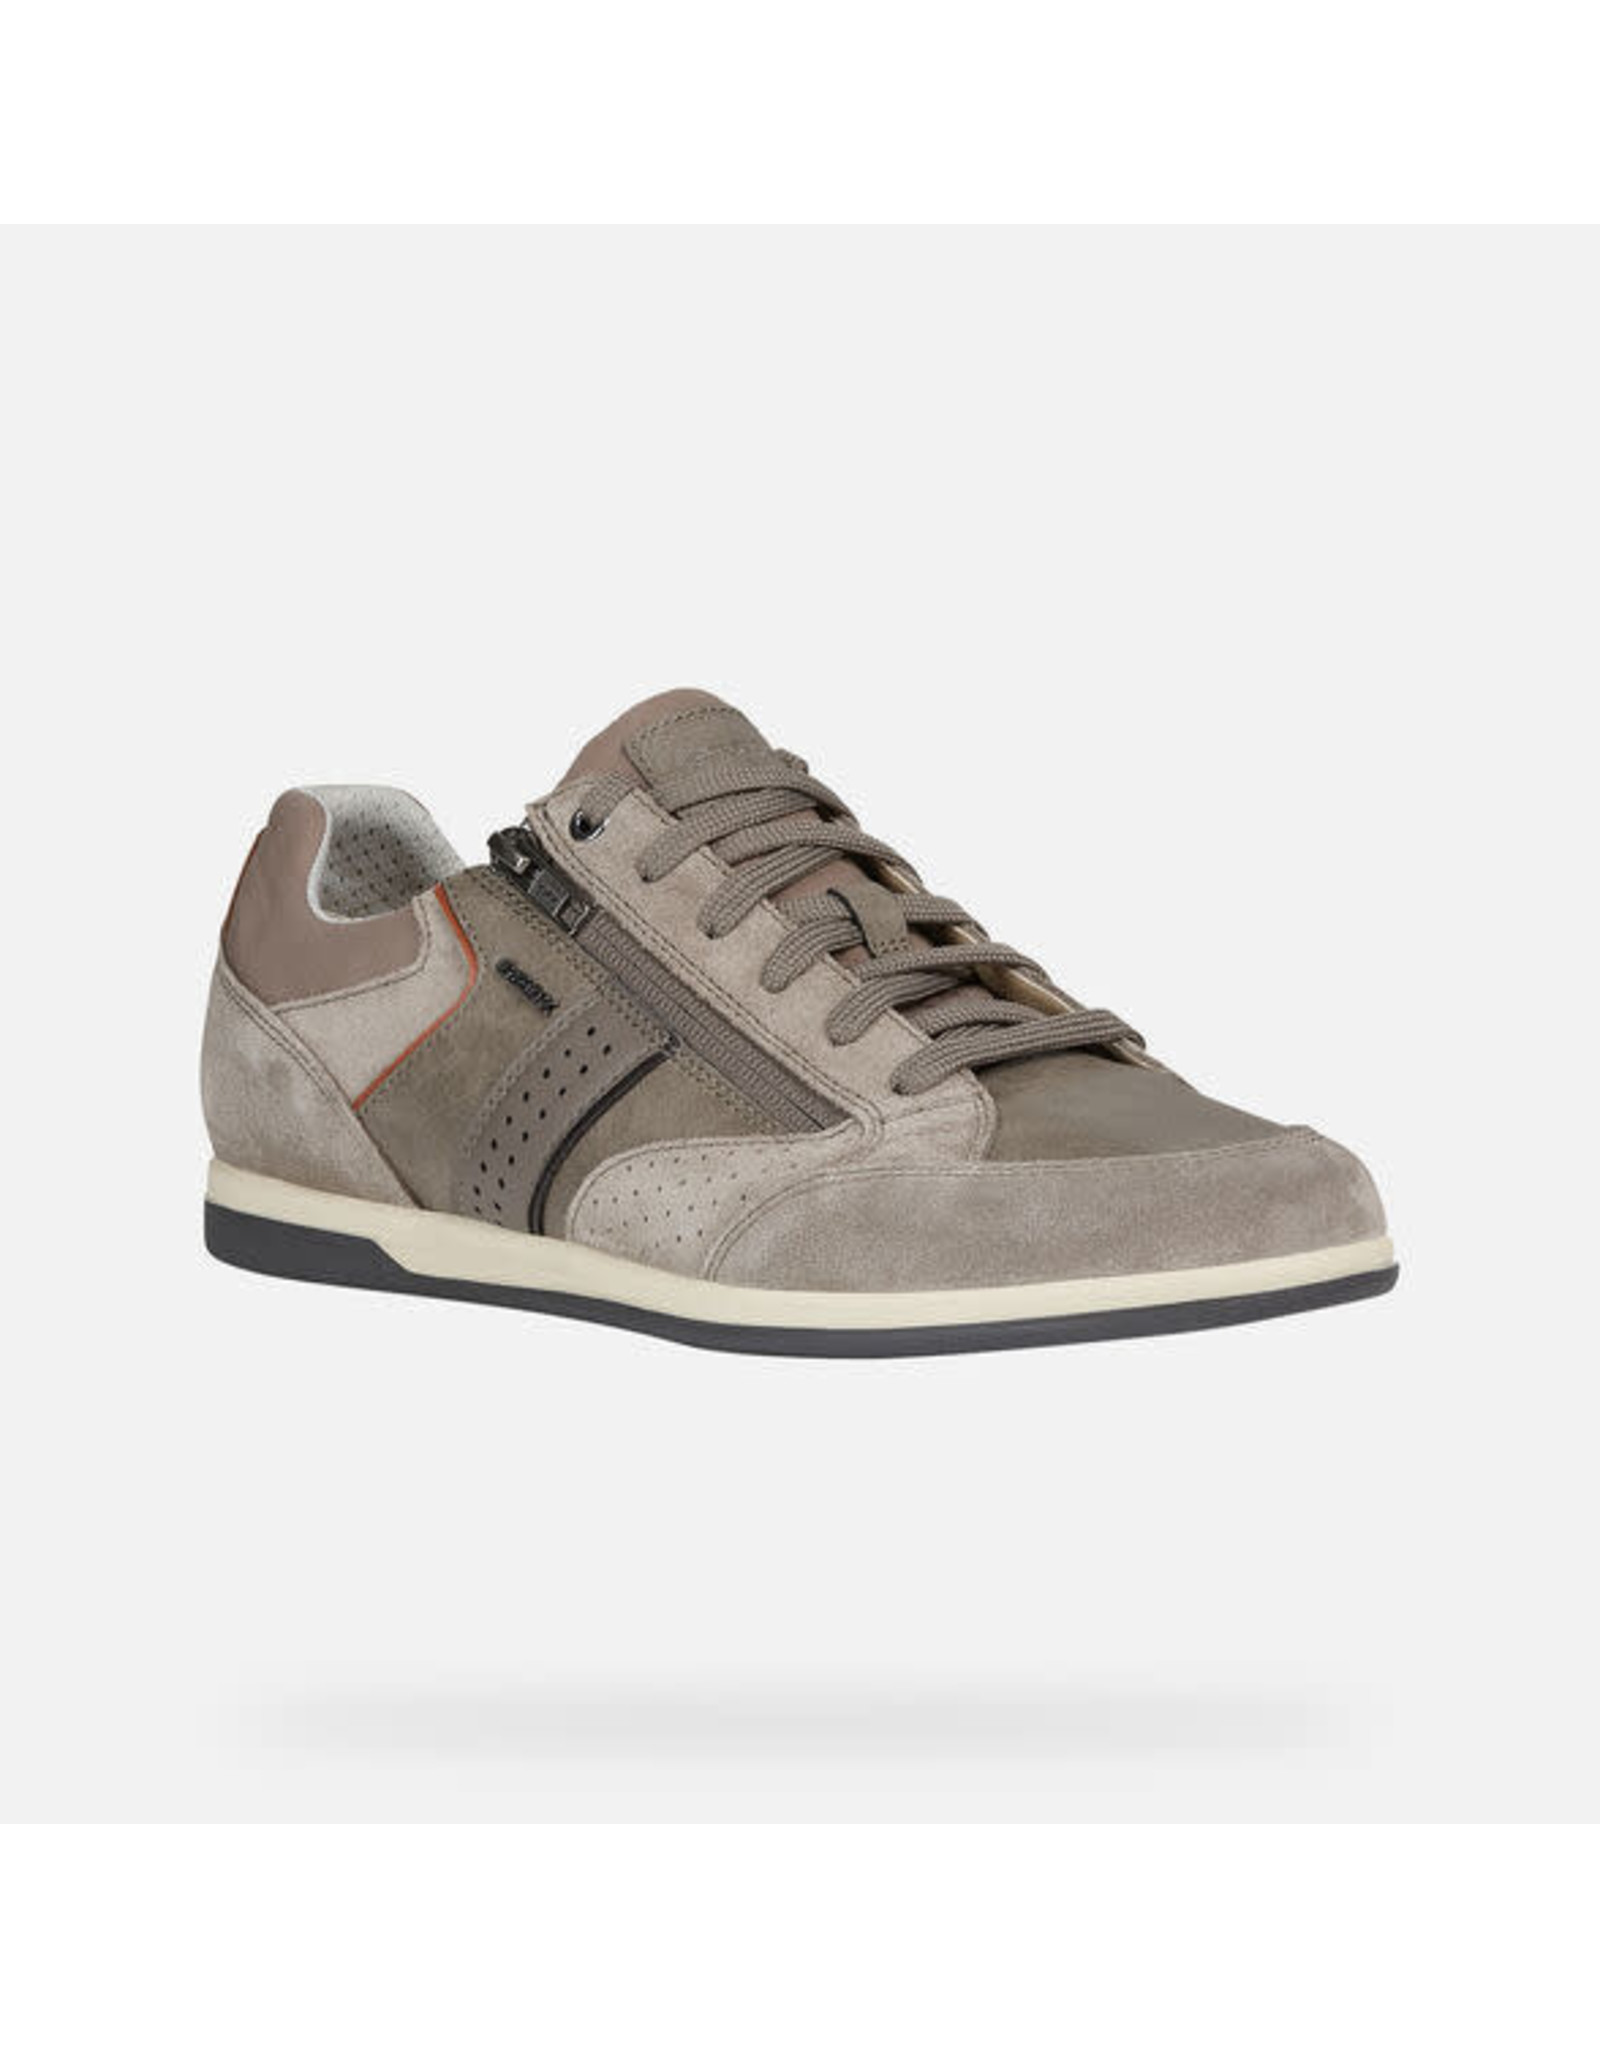 Geox Renan Taupe Trainer